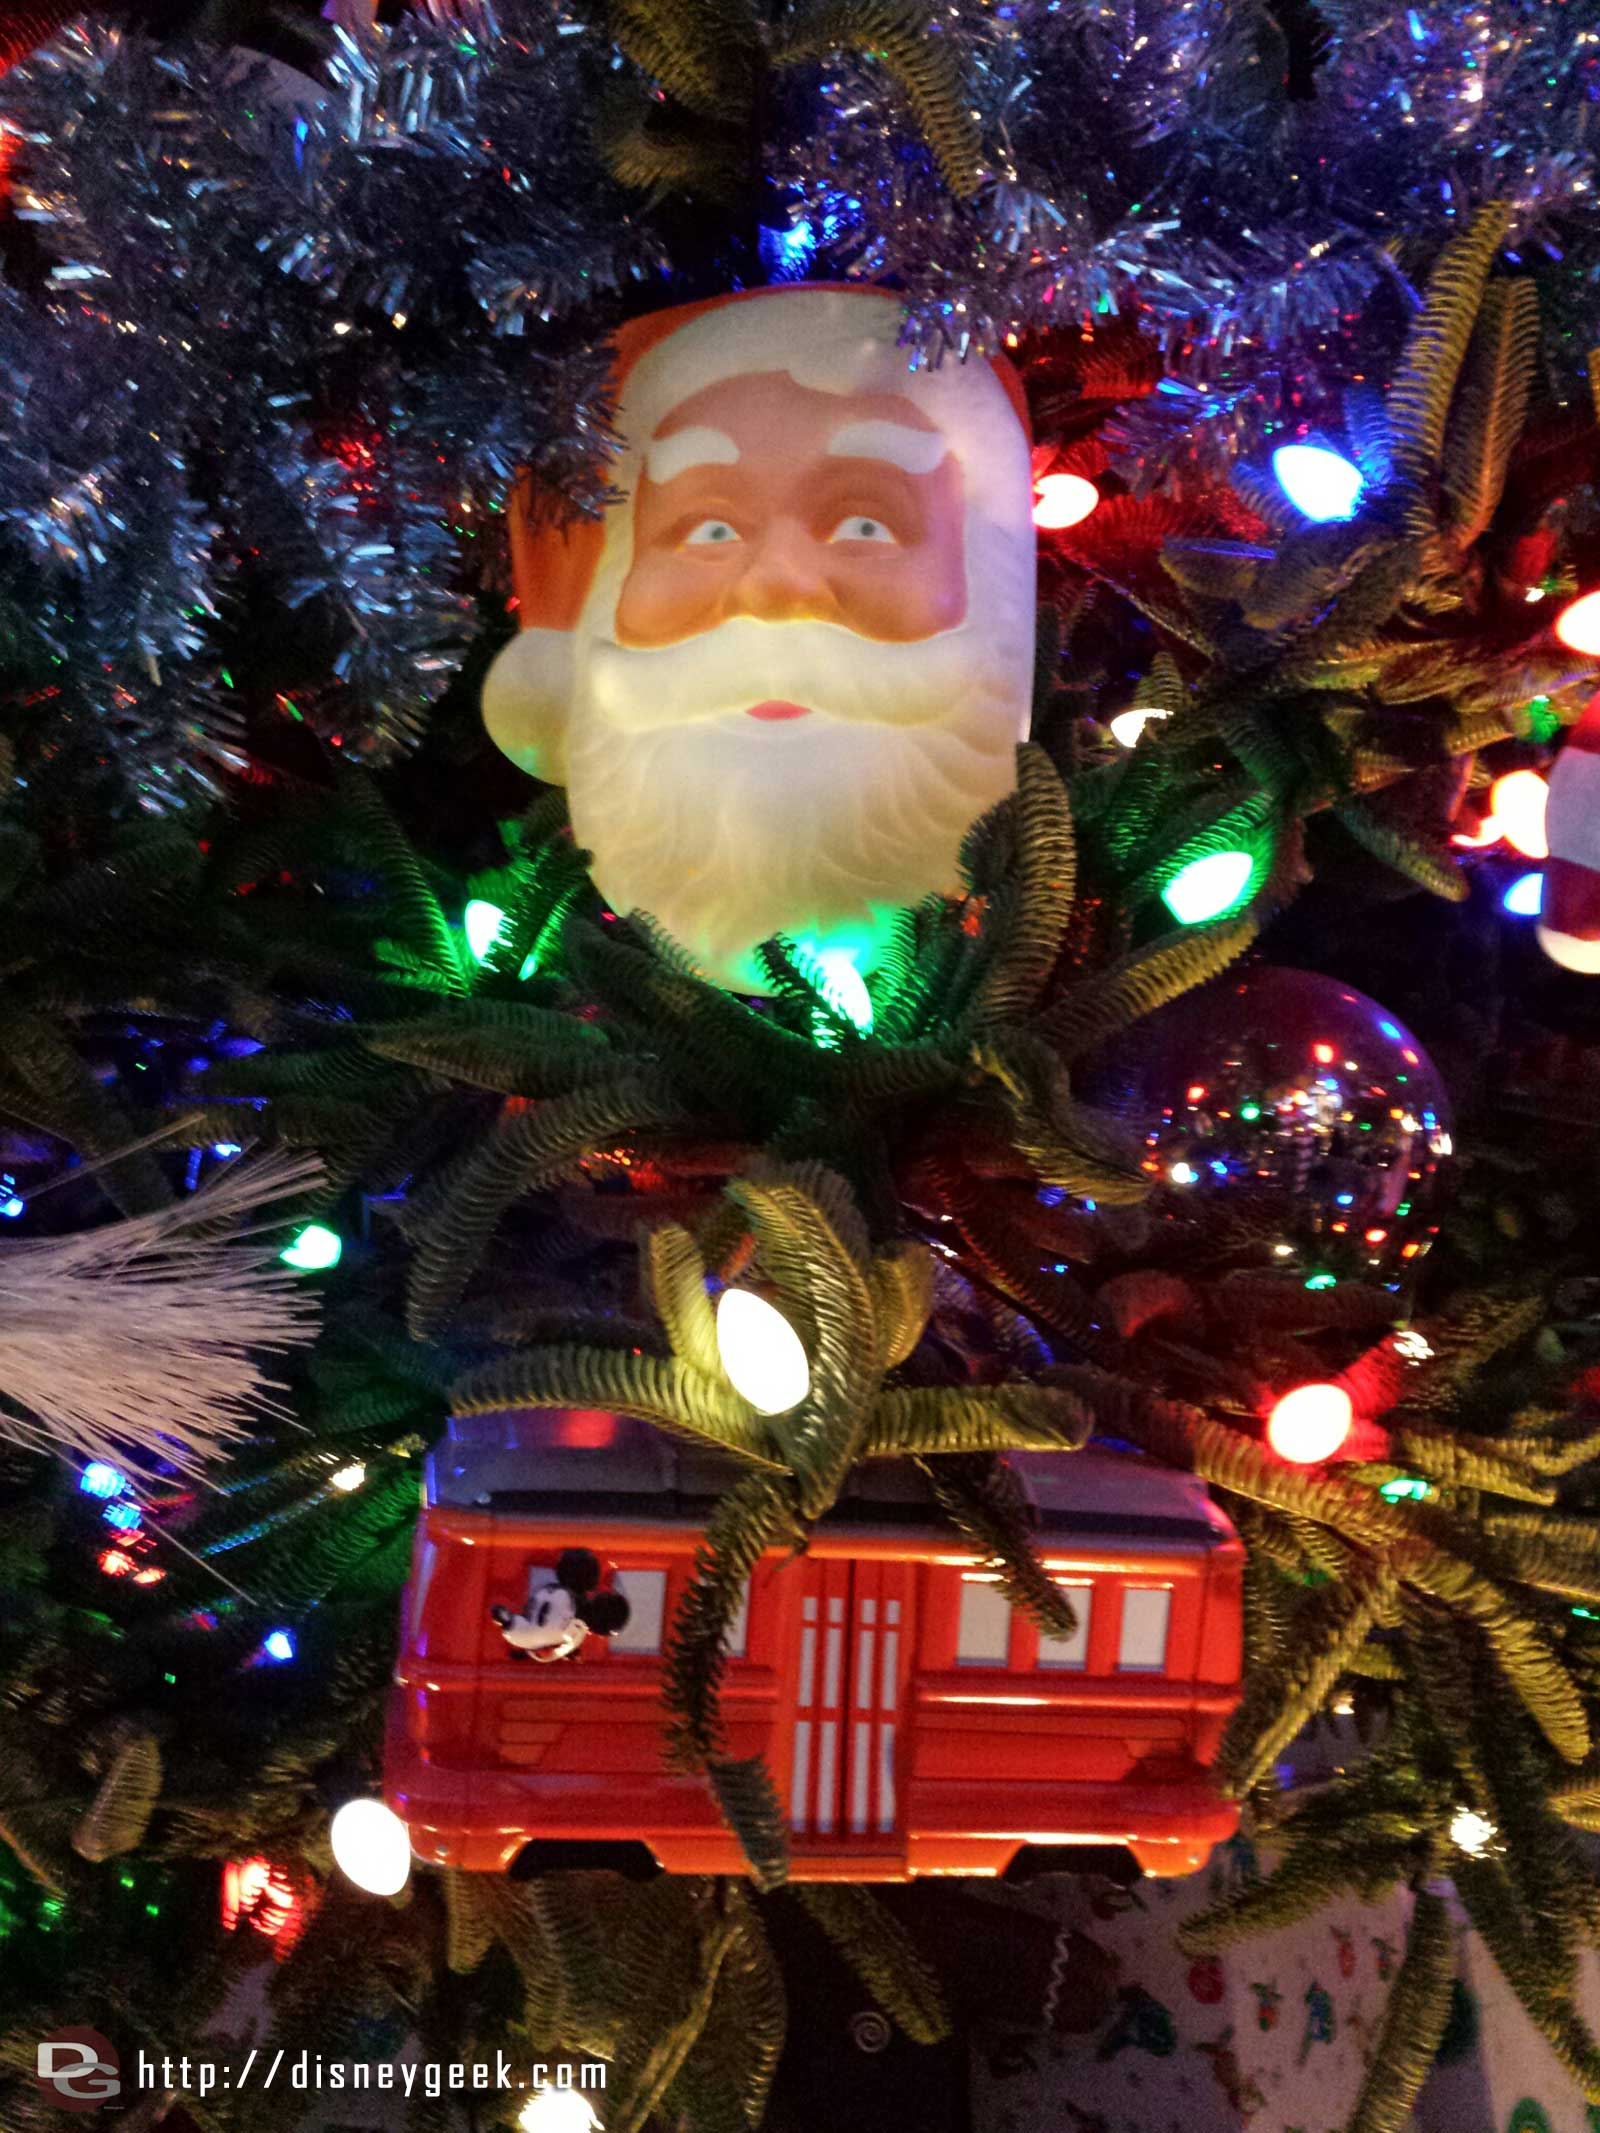 #BuenaVistaStreet tree Santa and Red Car ornaments